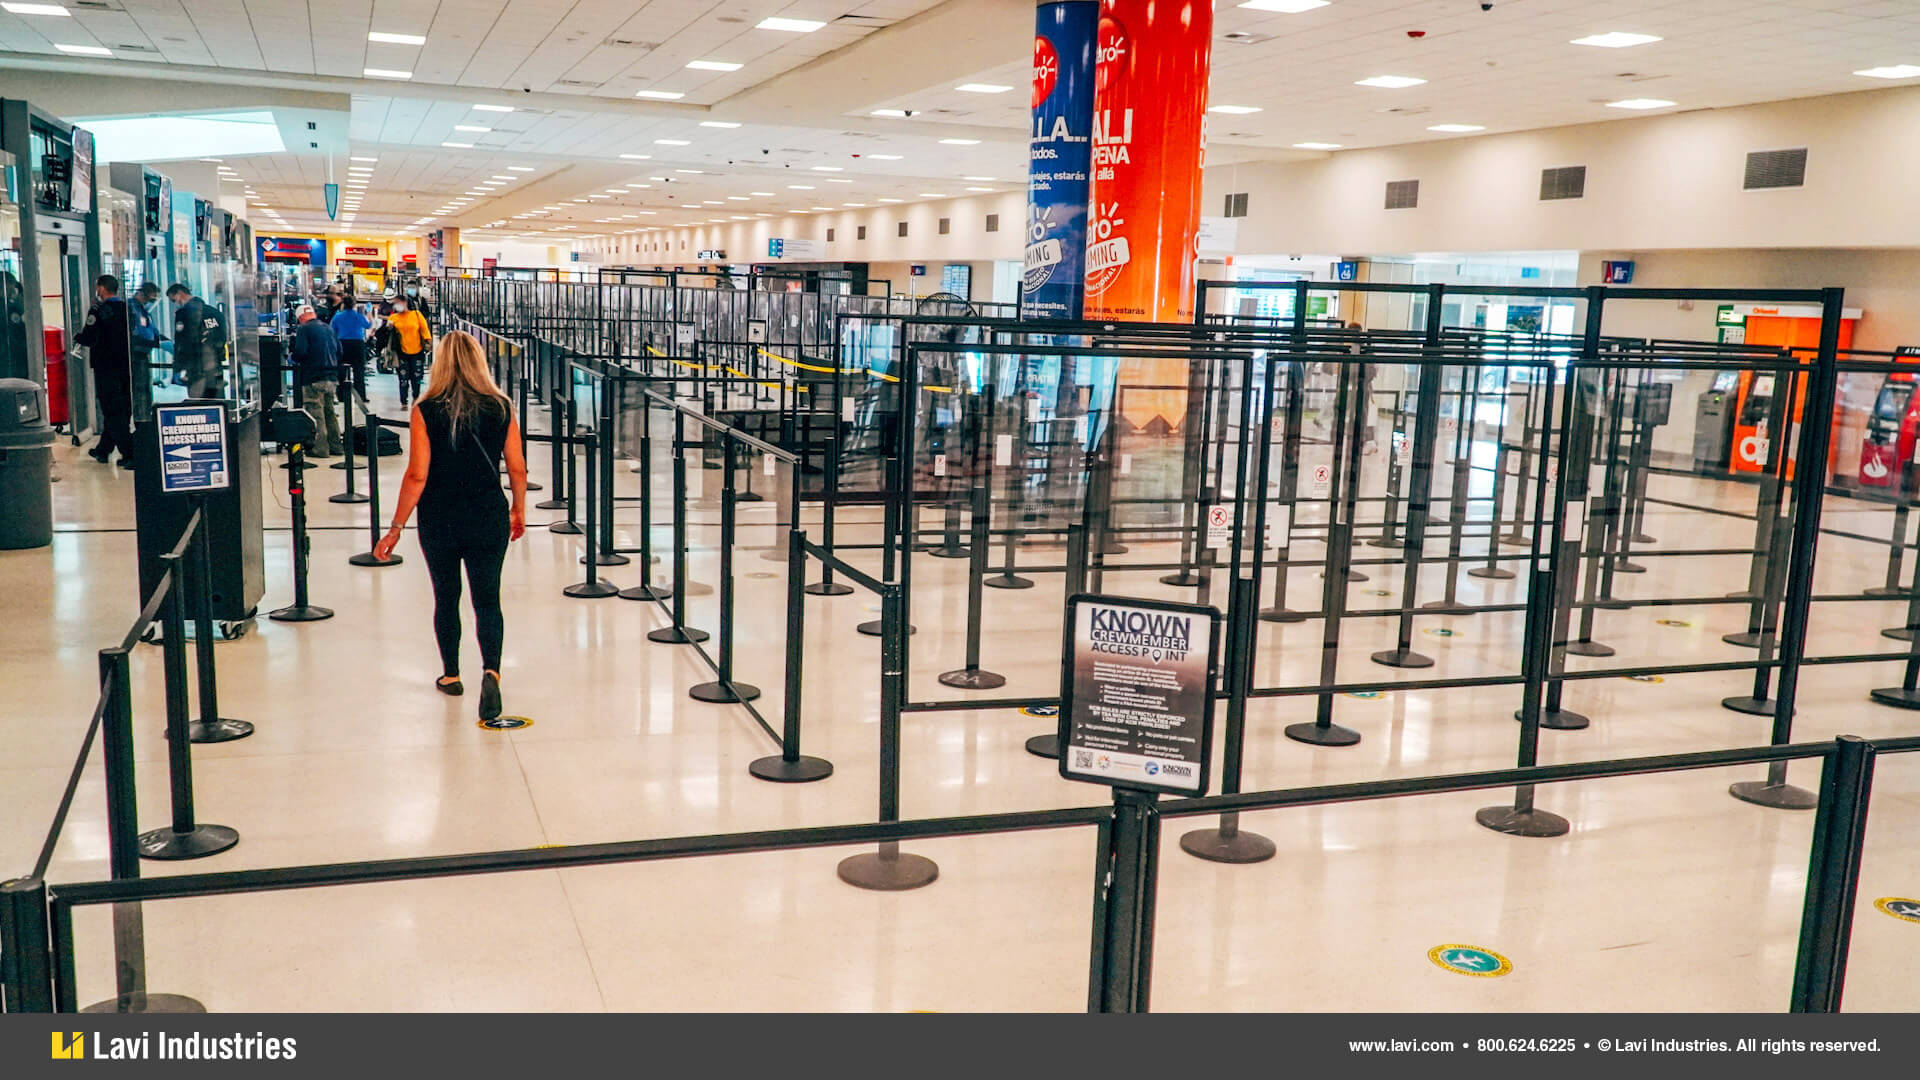 Airport,Government,Barriers,Queuing,Security,SocialDistancing,RigidRail,Stanchions,QueueGuard